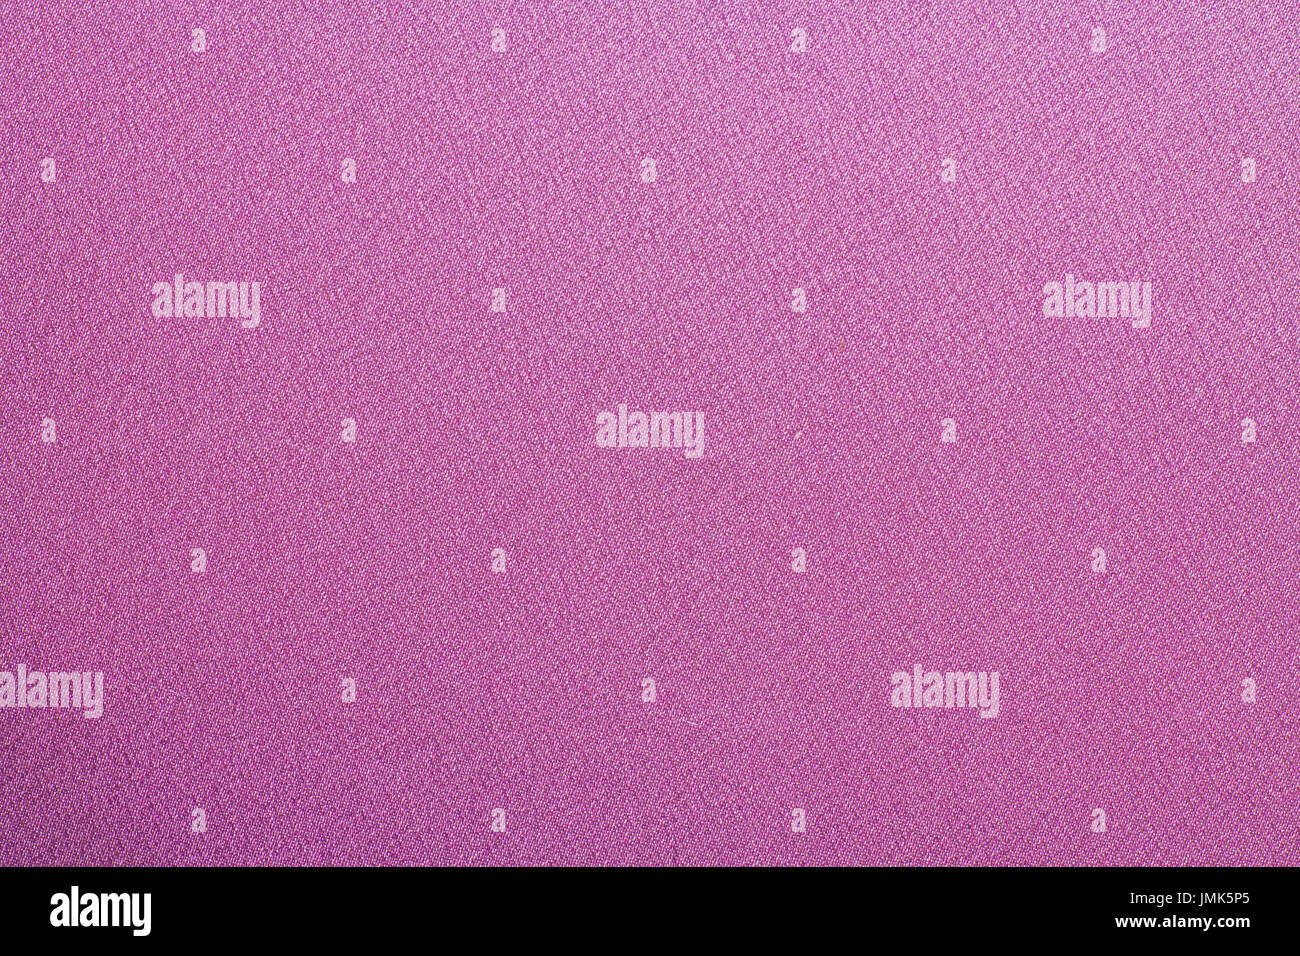 Texture of purple synthetic fabric - Stock Image